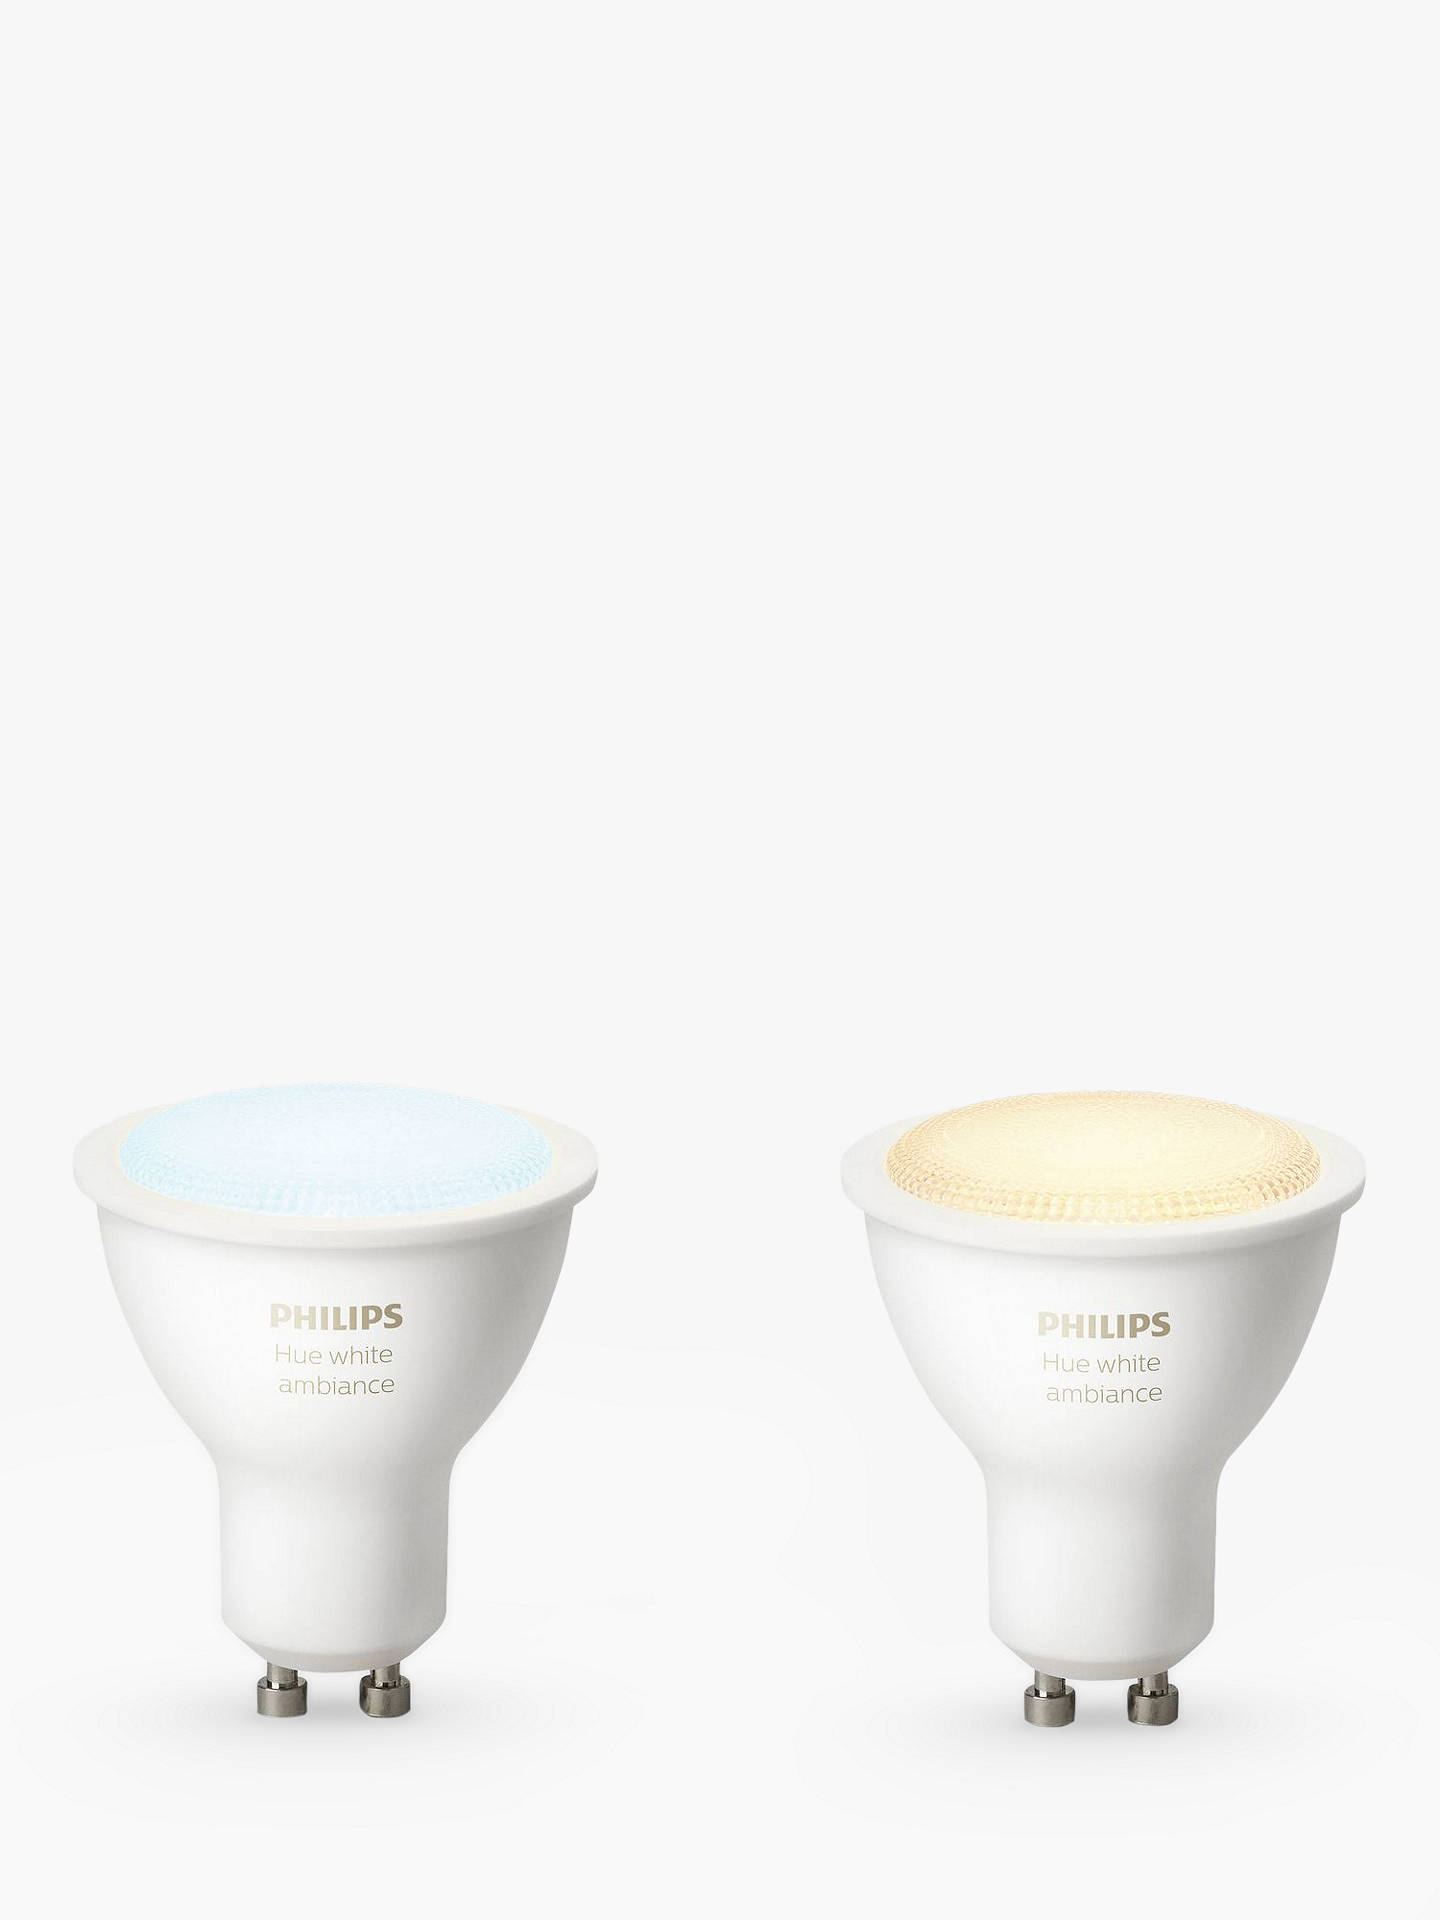 Buy Philips Hue White Ambiance Wireless Lighting LED Light Bulb, 5.5W GU10 Bulb, Pack of 2 Online at johnlewis.com